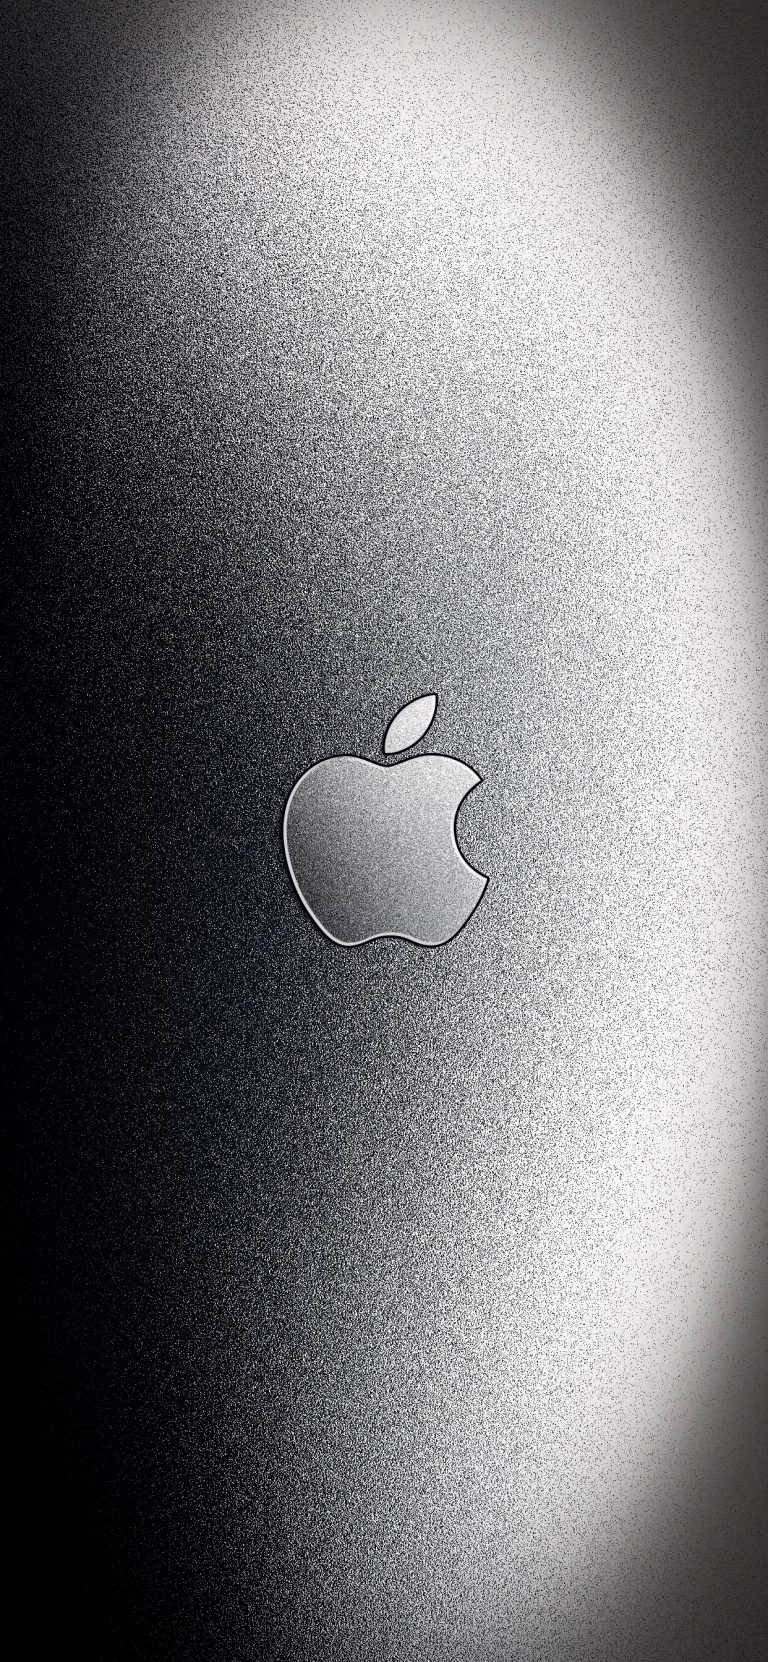 Aluminum Apple logo wallpapers for iPhone (With images